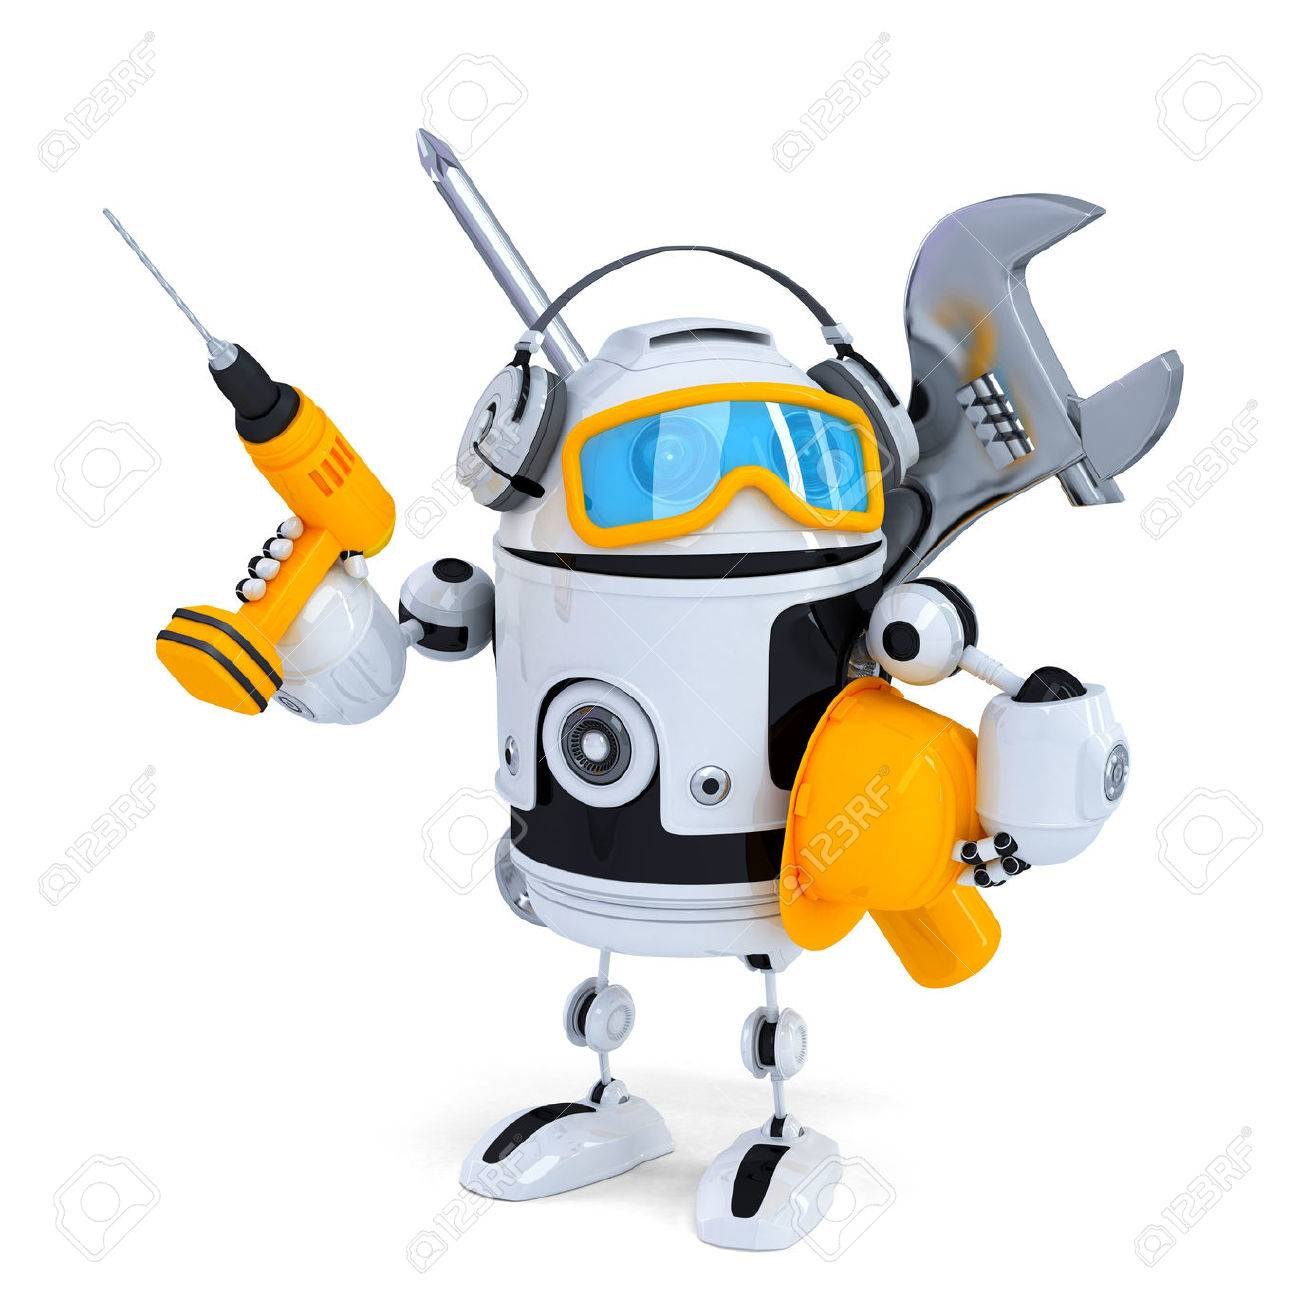 Construction robot with tools. Isolatedover white. Contains clipping path Standard-Bild - 31643296